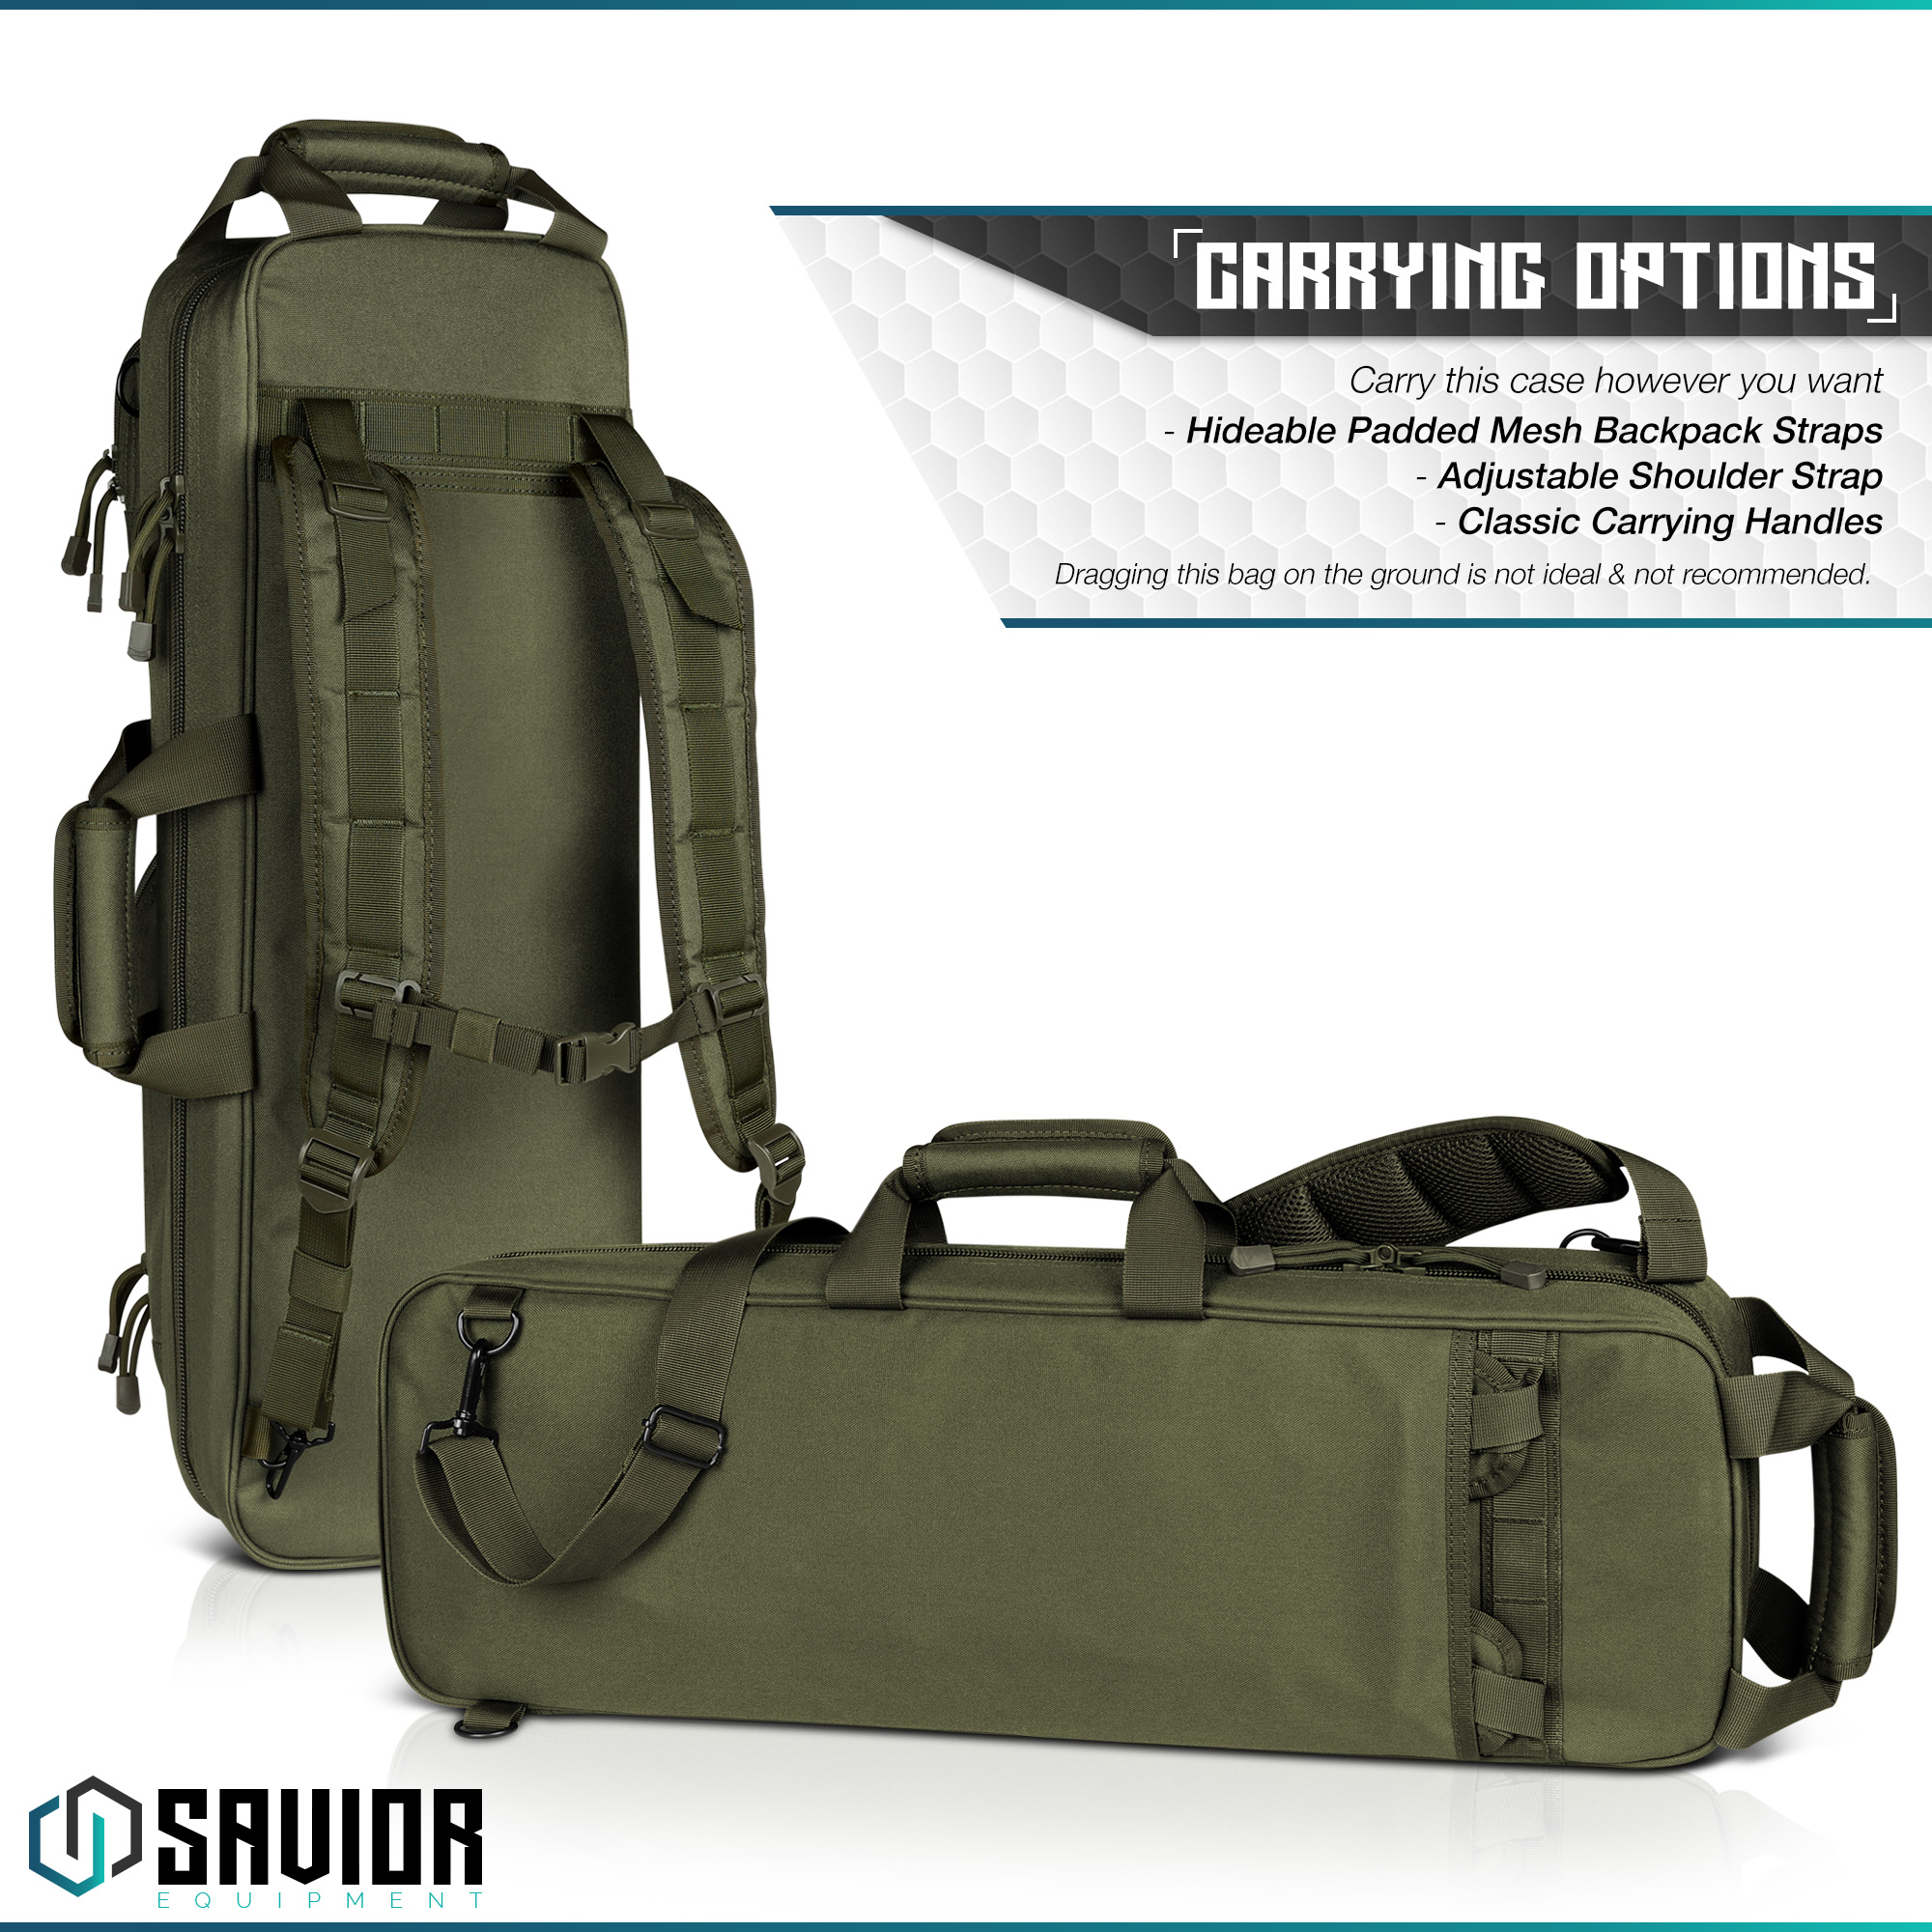 Savior-Tactical-Urban-Takedown-Bag-Carbine-Rifle-Padded-Shotgun-Firearm-Backpack thumbnail 18